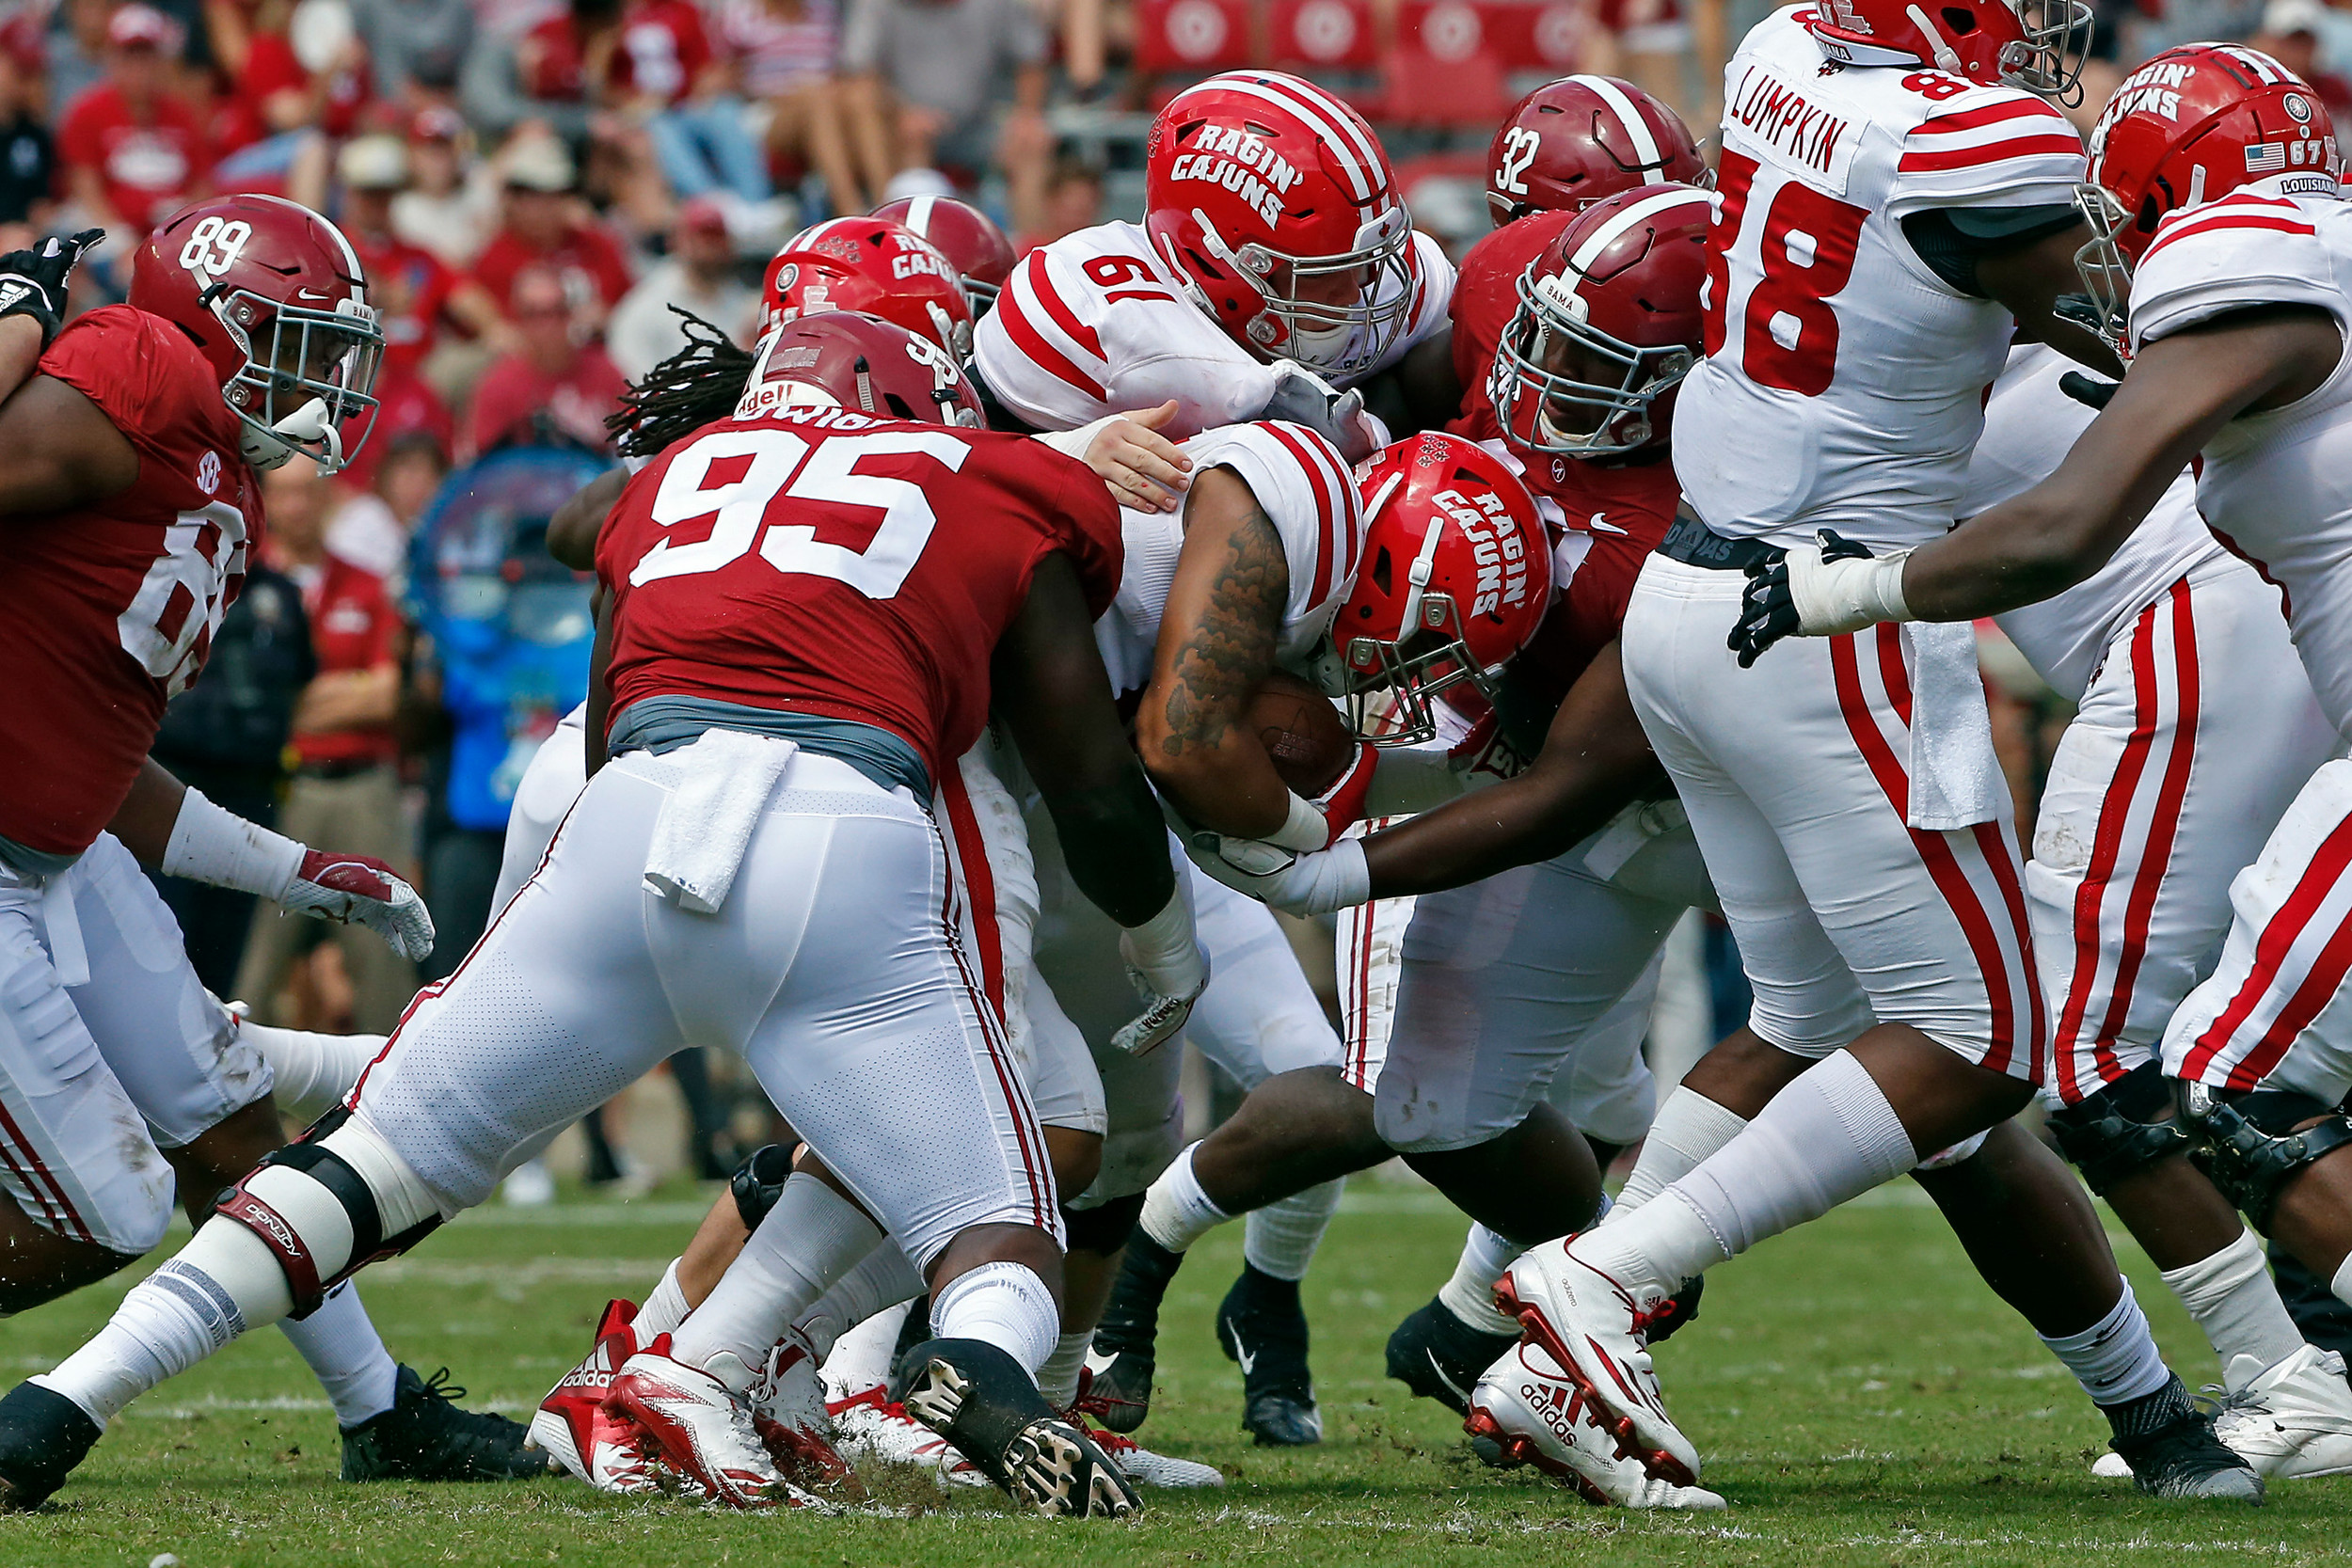 Alabama Crimson Tide defensive linemen Johnny Dwight (95) and  Phidarian Mathis (48) combine for a tackle at Bryant-Denny Stadium in Tuscaloosa, Al on September 29, 2018. Jason Clark / Daily Mountain Eagle